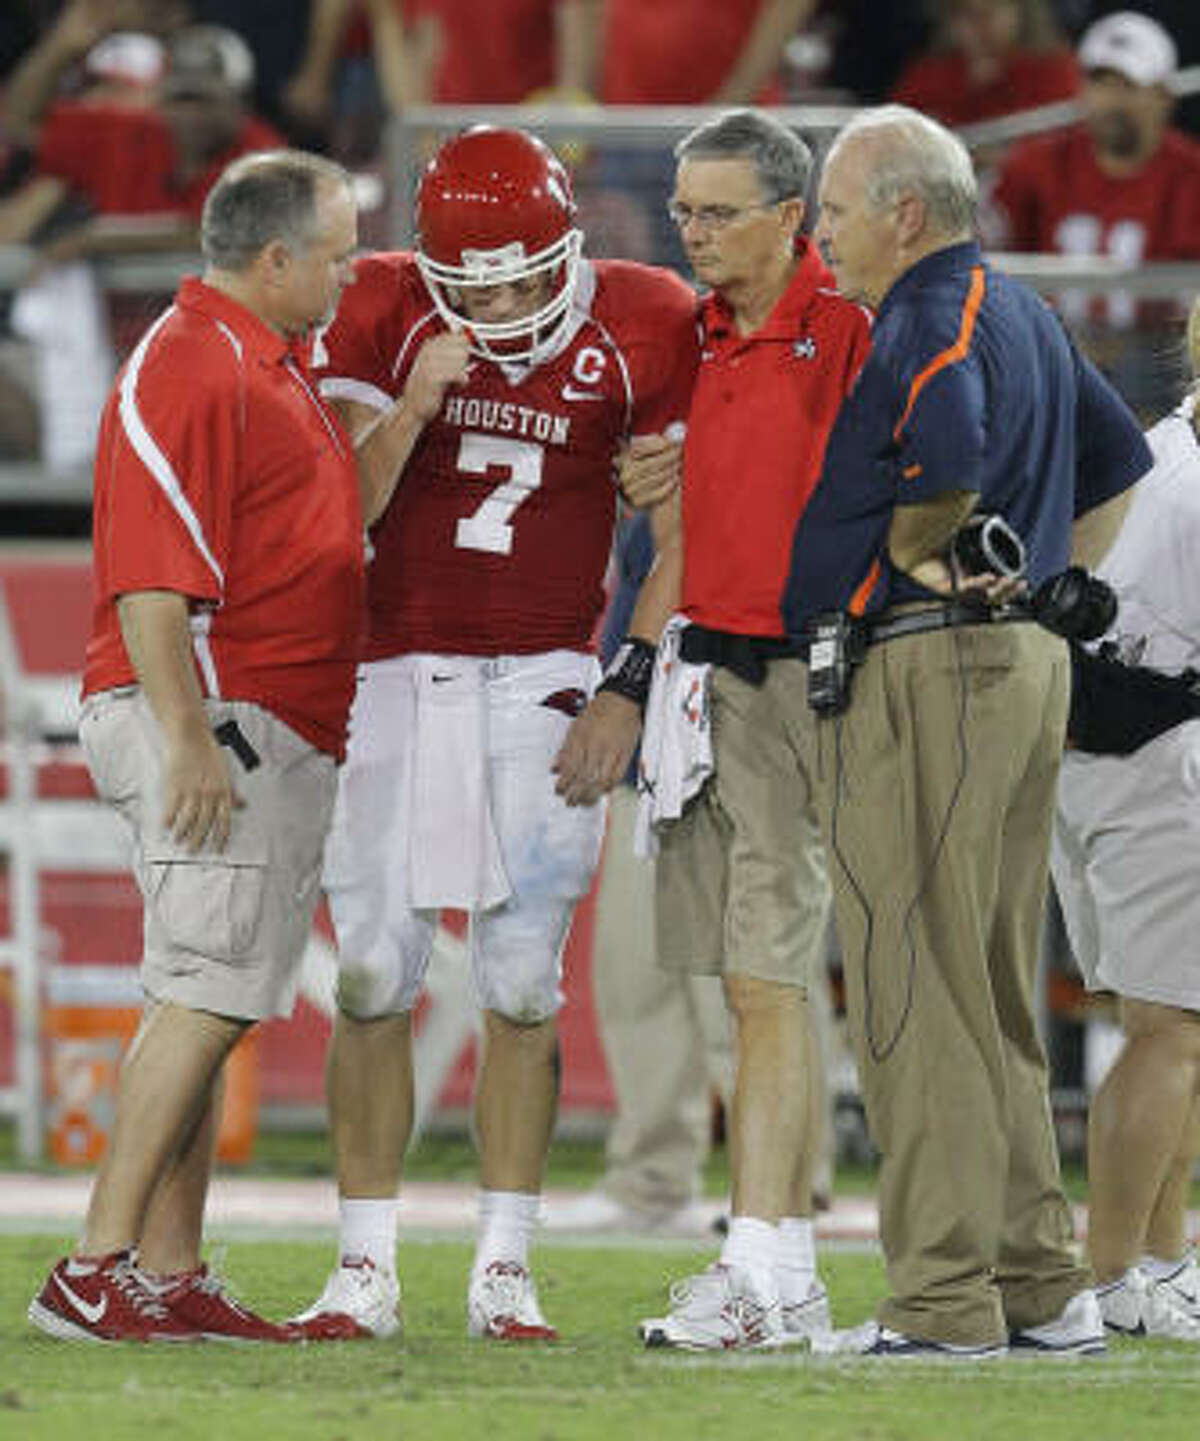 UH quarterback Case Keenum was shaken up while trying to make a tackle and left in the third quarter of Saturday's game.